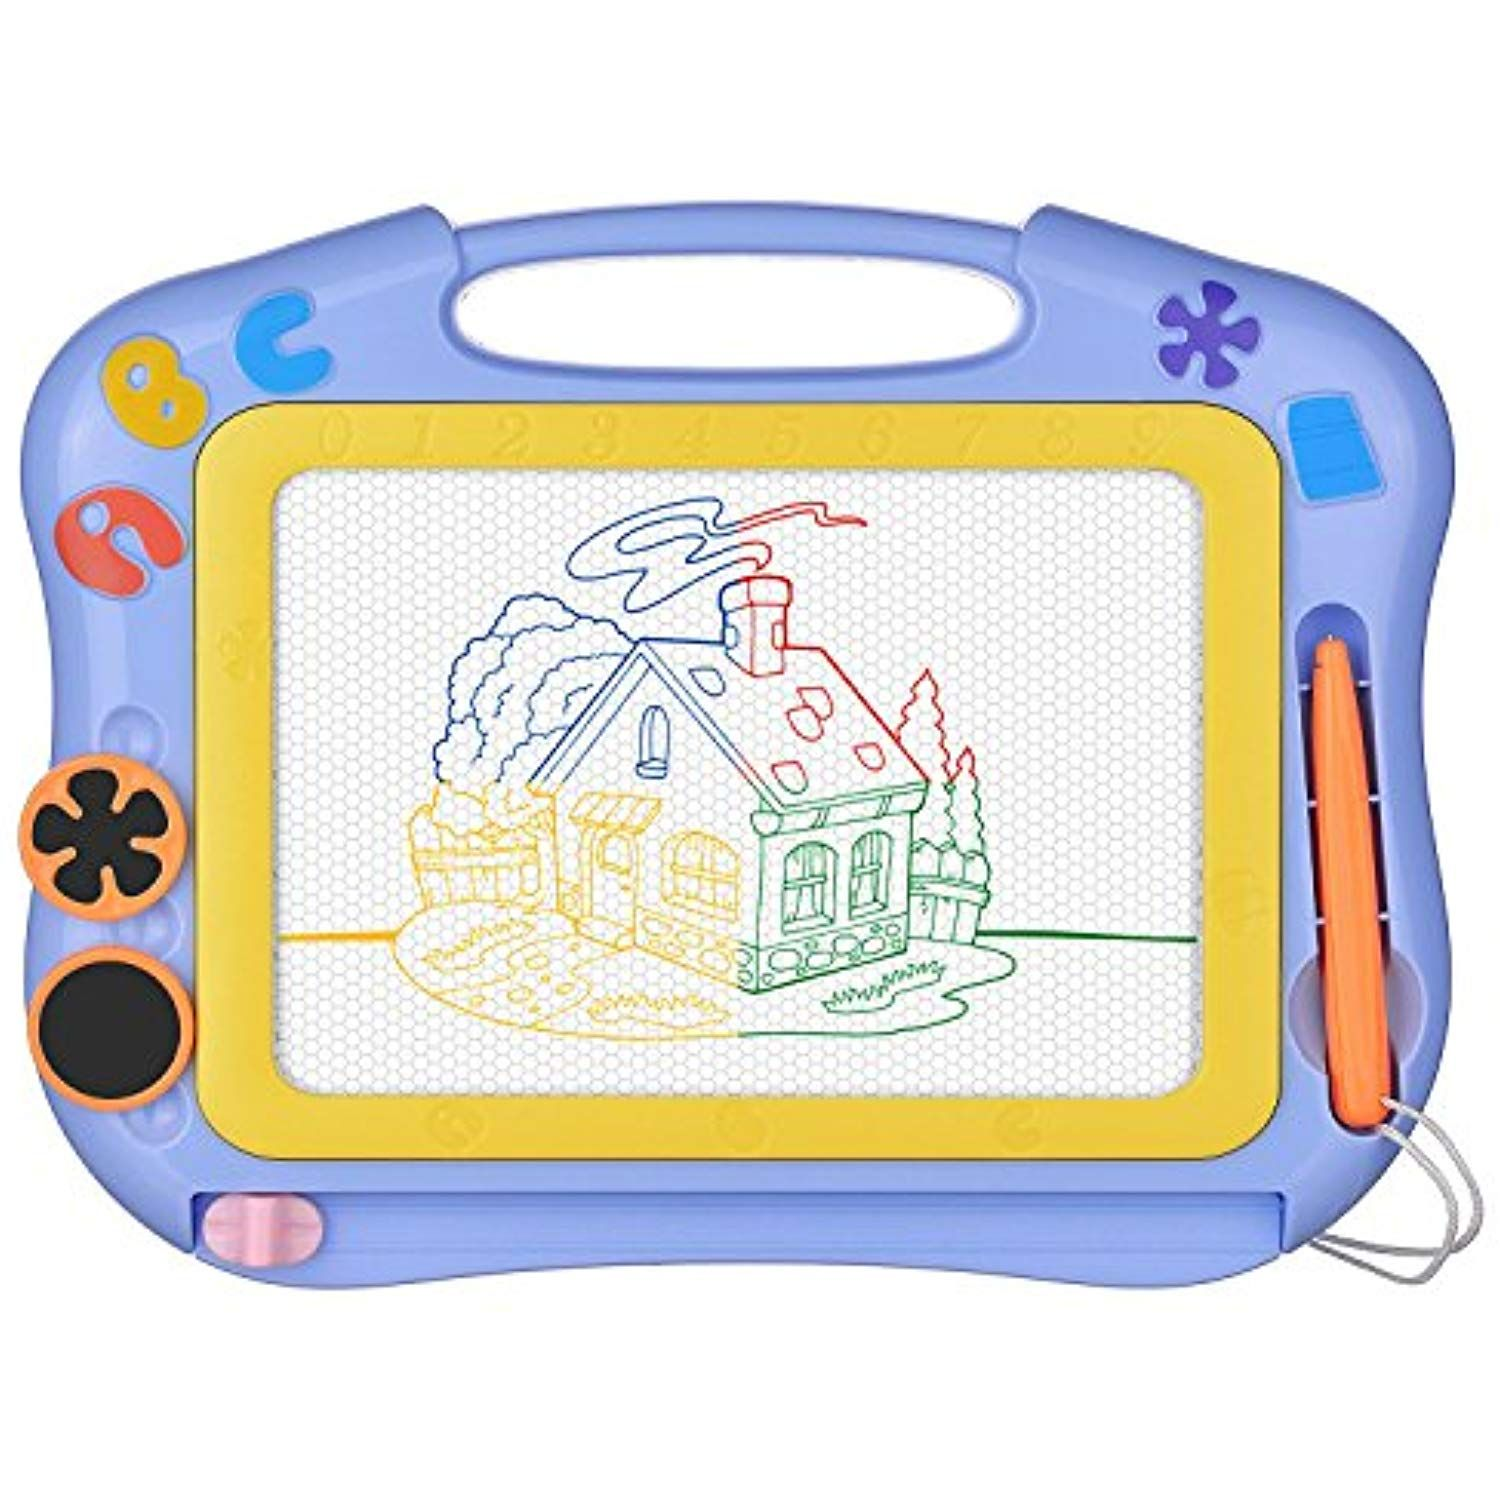 Magnetic Drawing Board Sketch Pad Doodle Writing Craft Art for Children Kid Gift